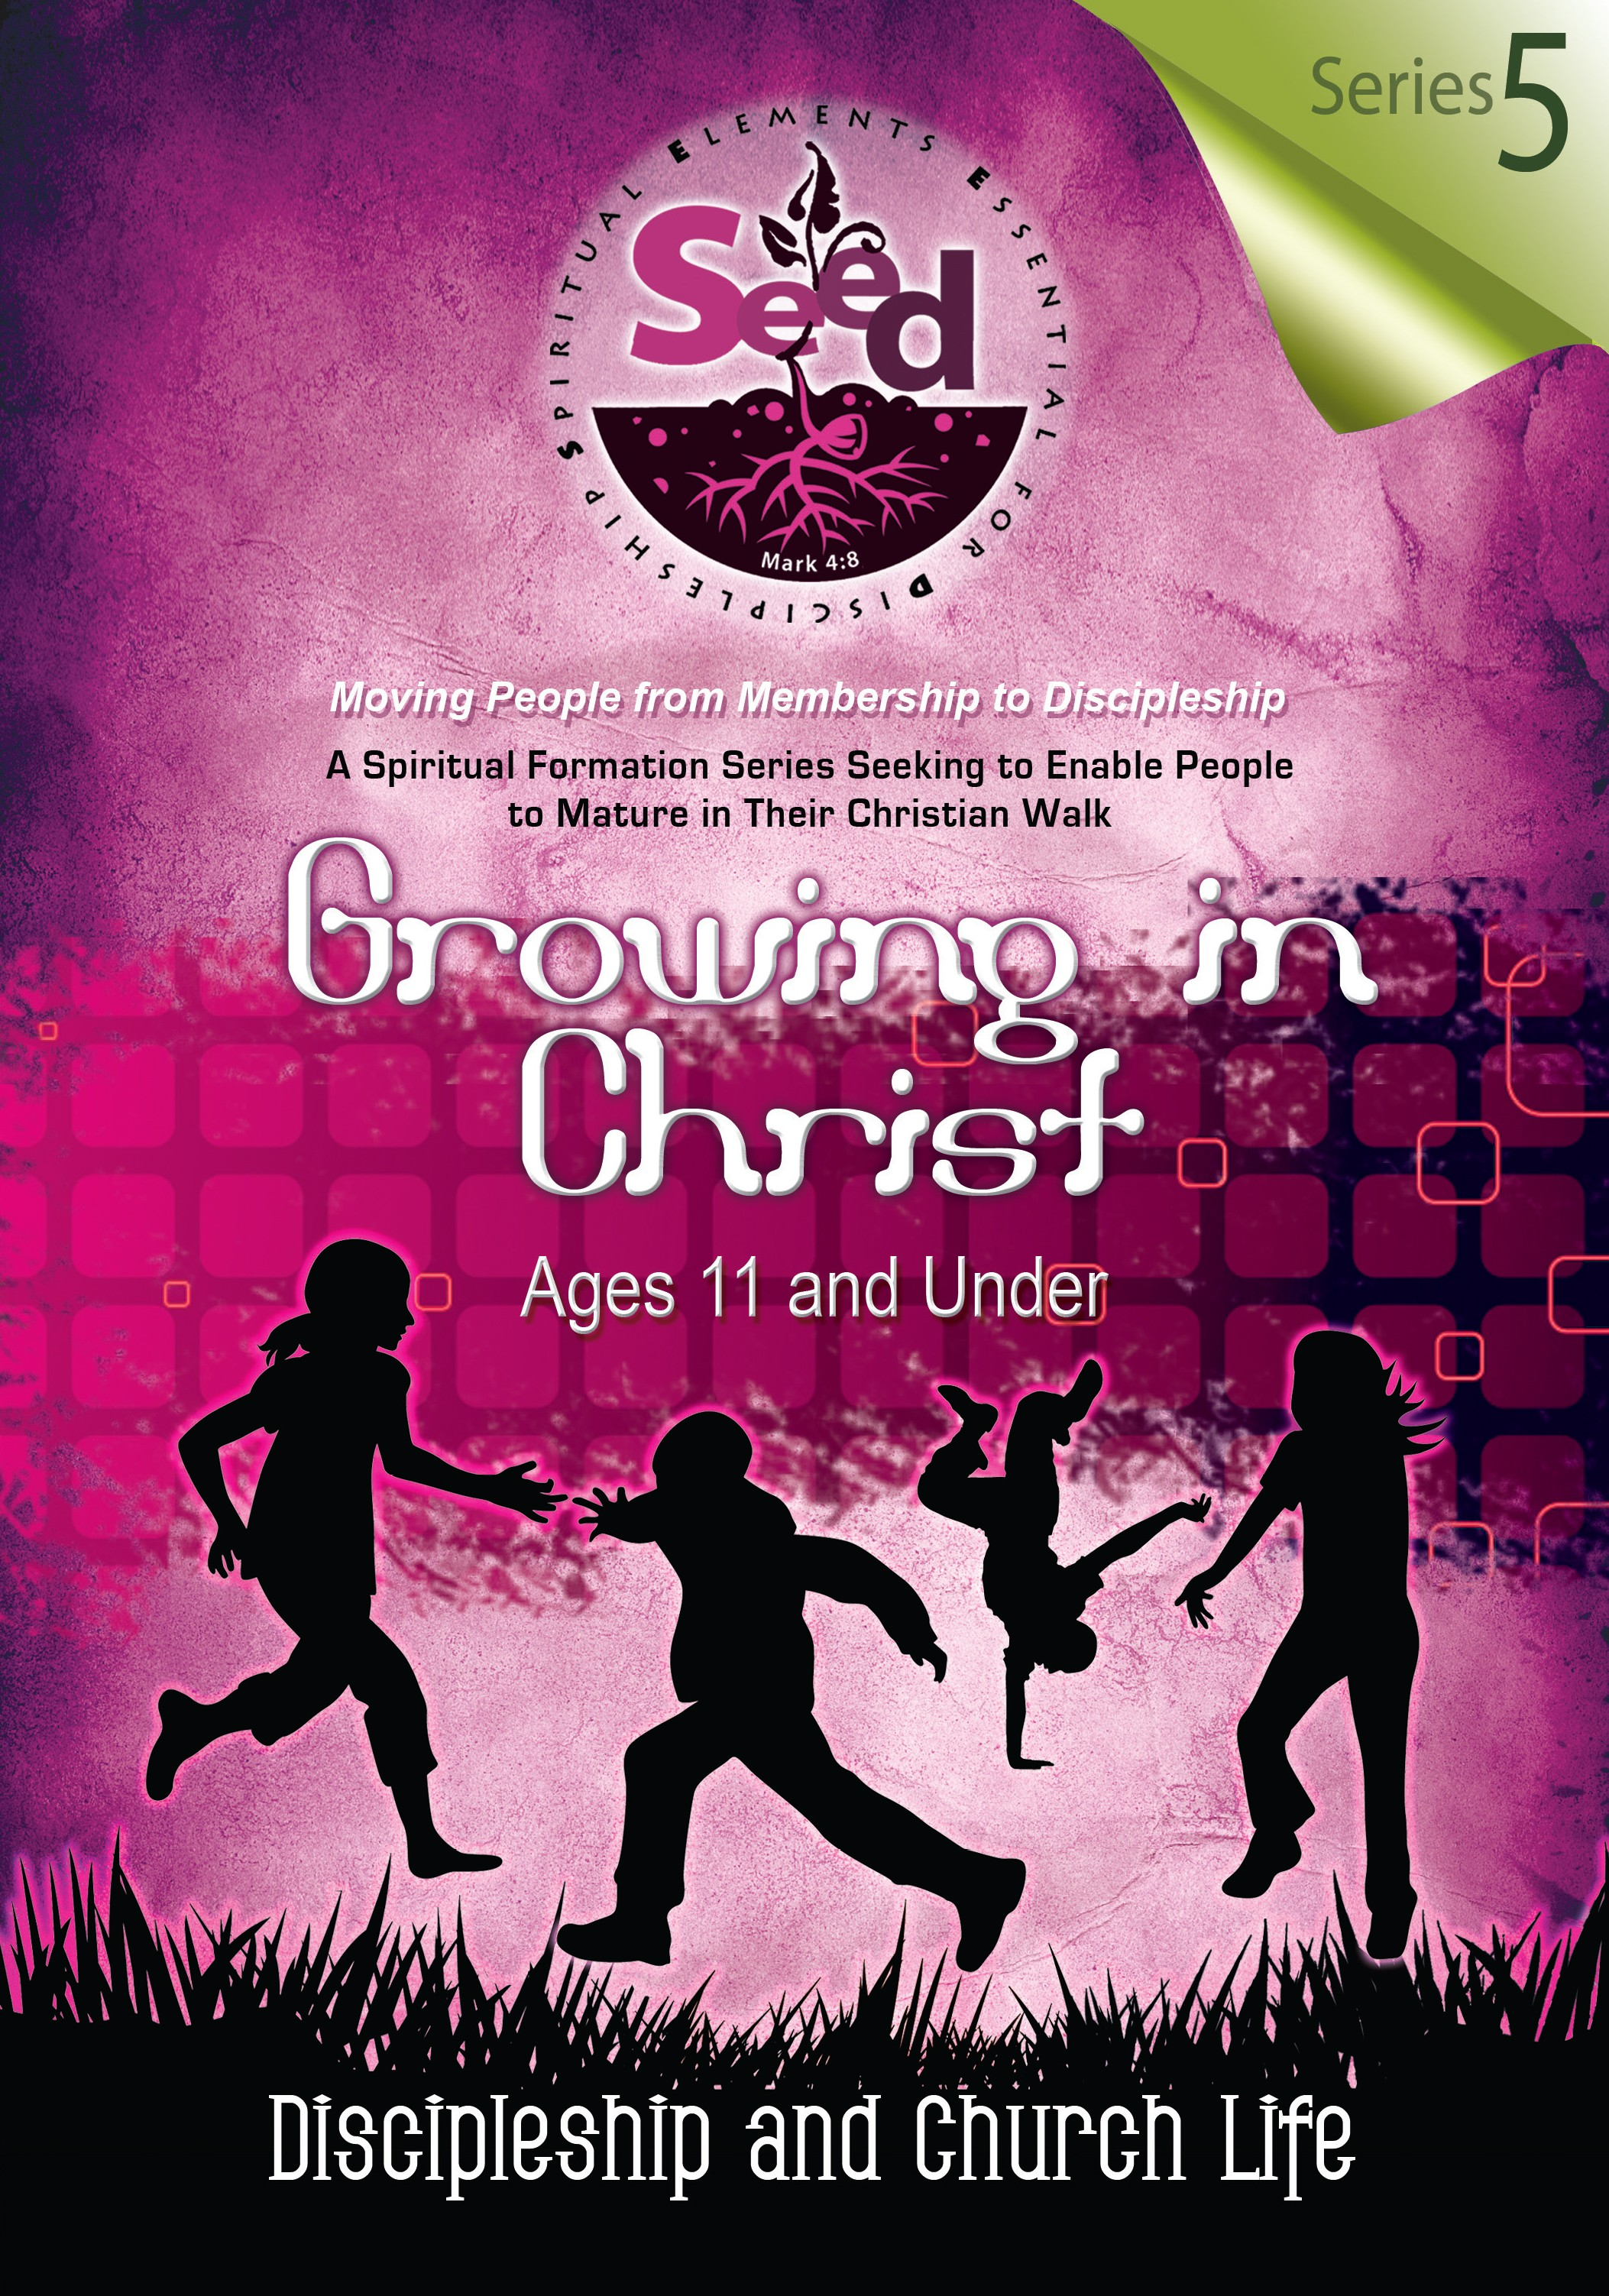 SEED Growing in Christ (Ages 11 and Under): Series 5: Discipleship and Church Life